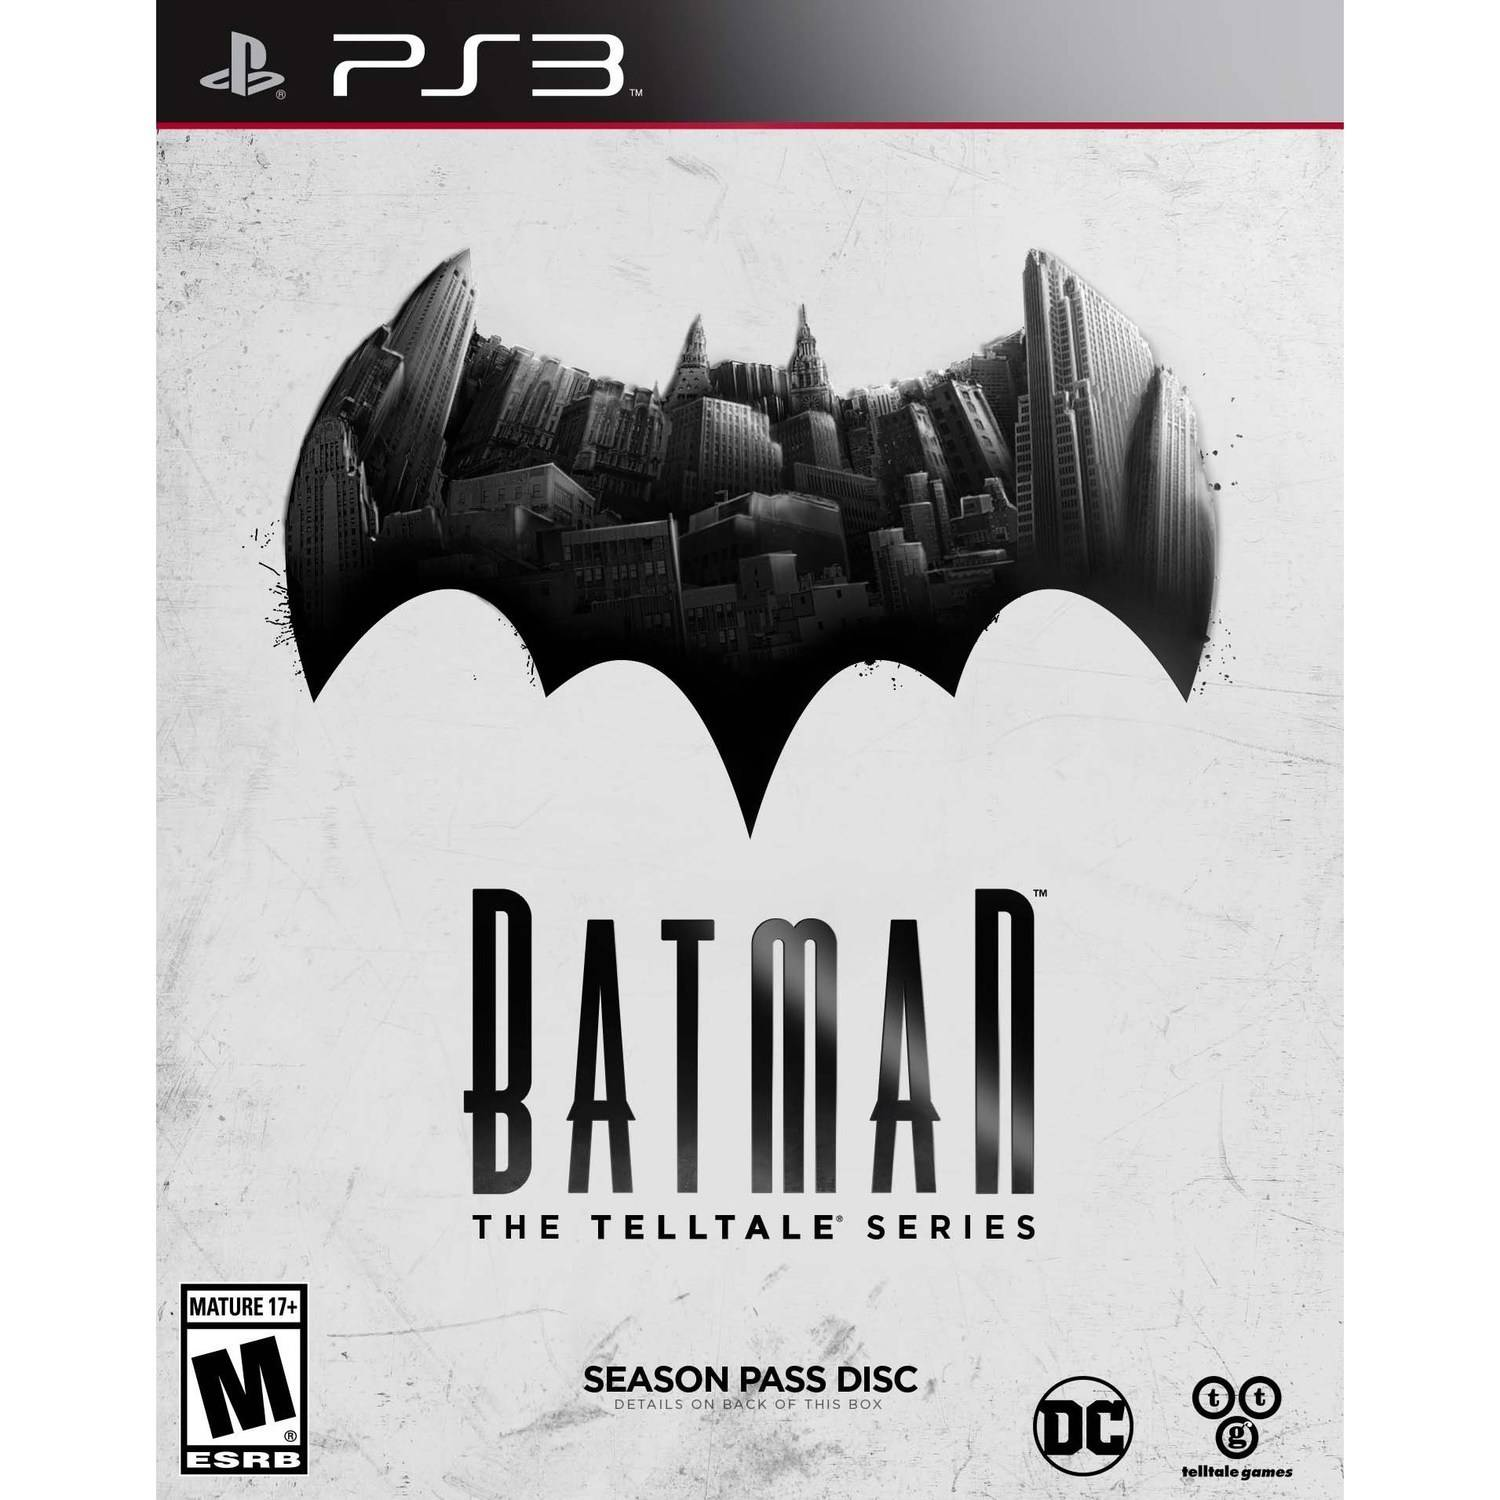 Batman: Telltale Series (Season Pass Disc), WHV Games, PlayStation 3, 883929558216